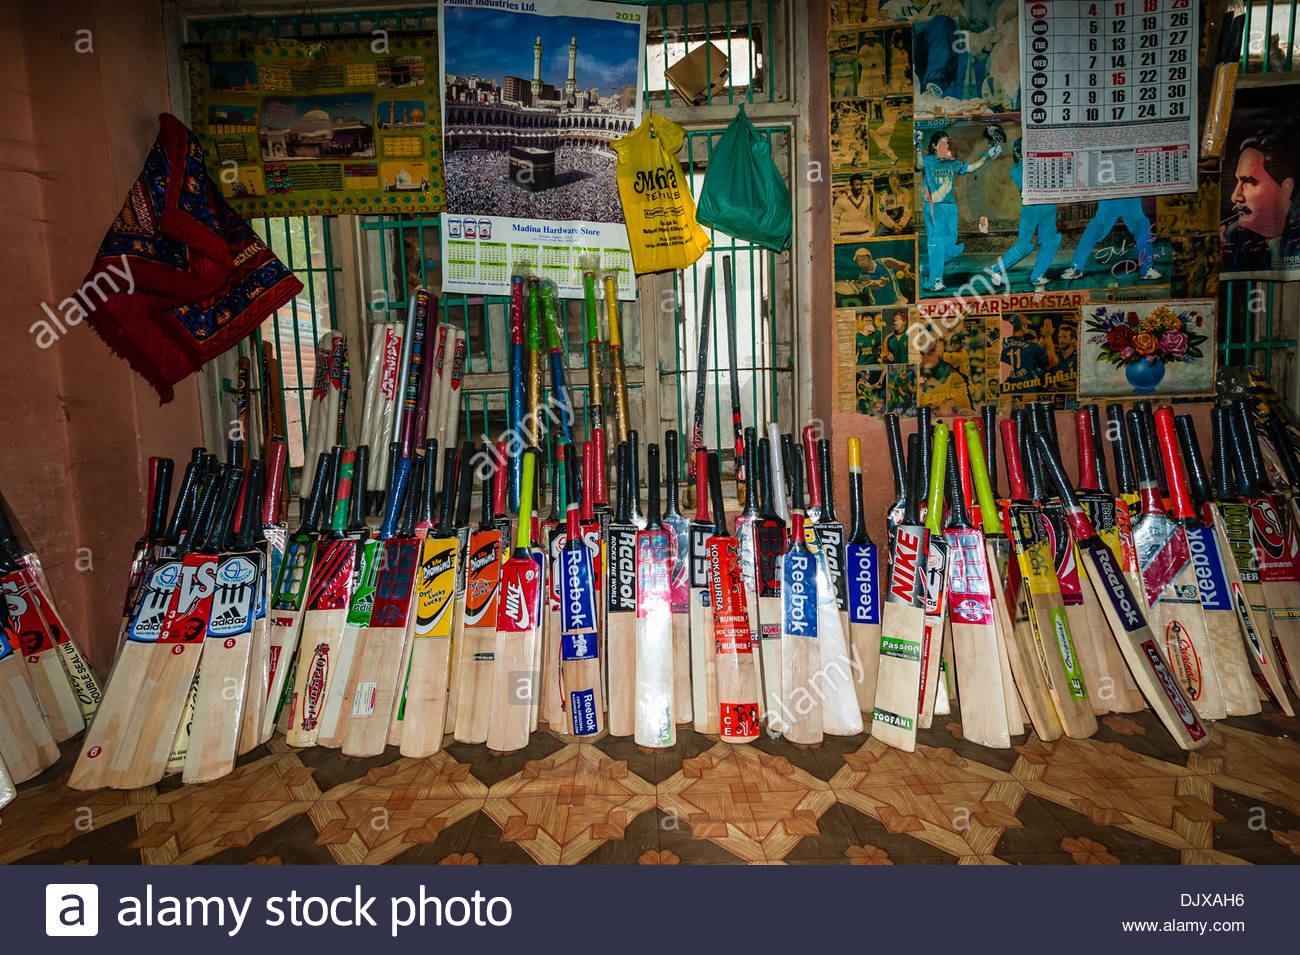 Cricket bat stock photos